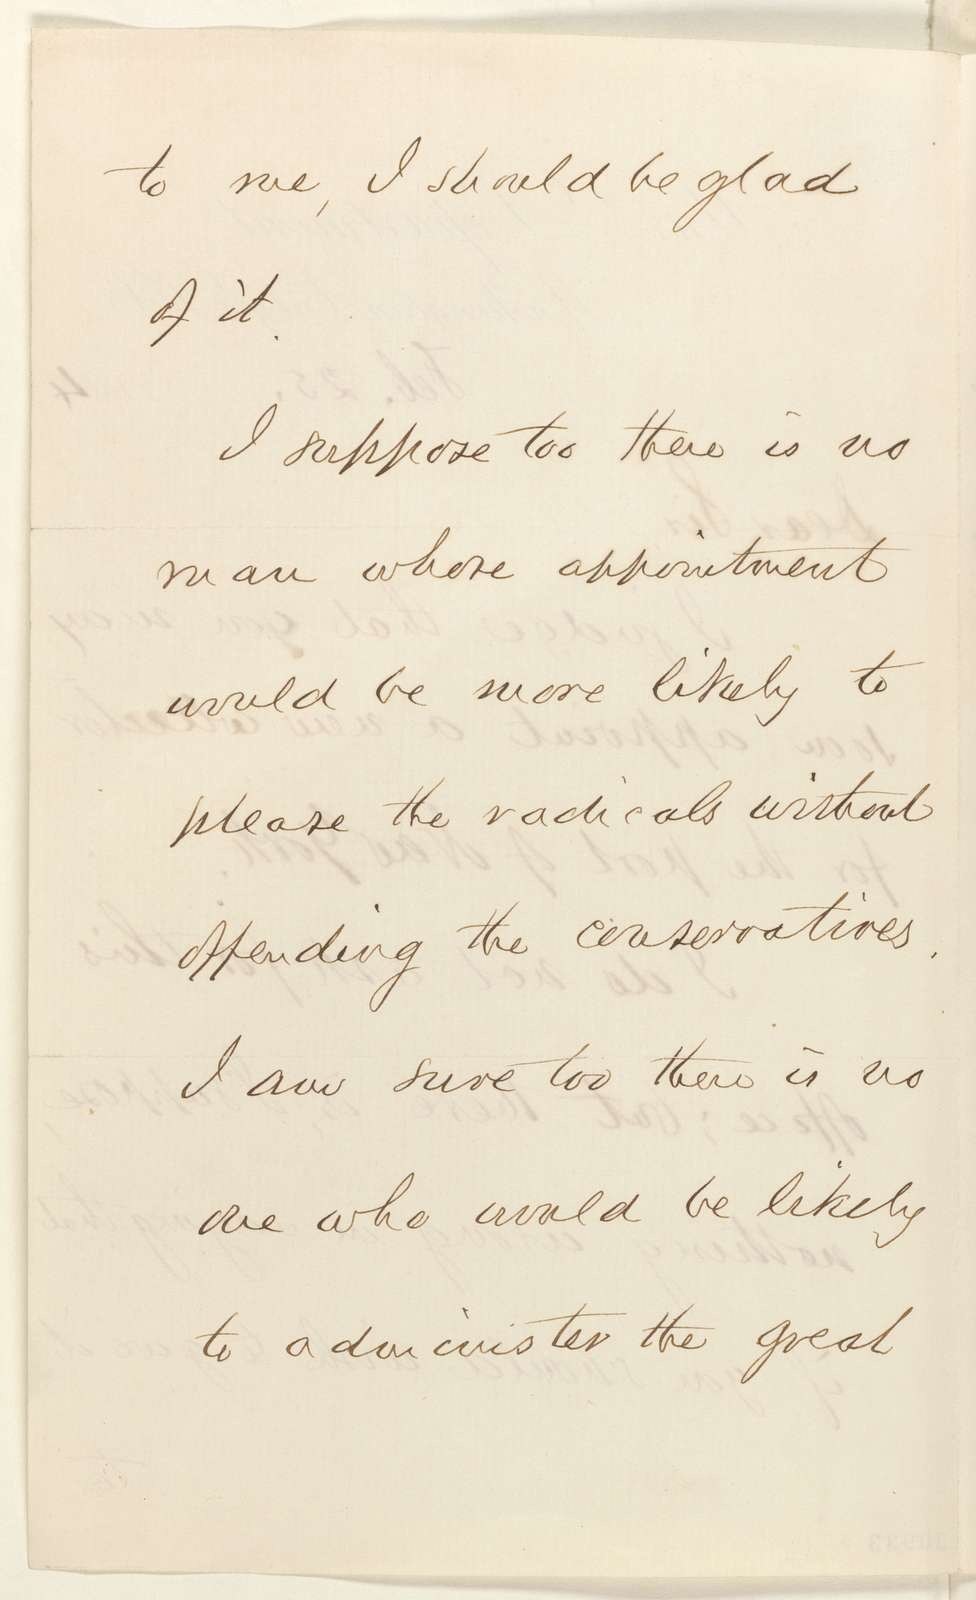 Abraham Lincoln papers: Series 1. General Correspondence. 1833-1916: Charles A. Dana to Abraham Lincoln, Thursday, February 25, 1864 (New York customs house)